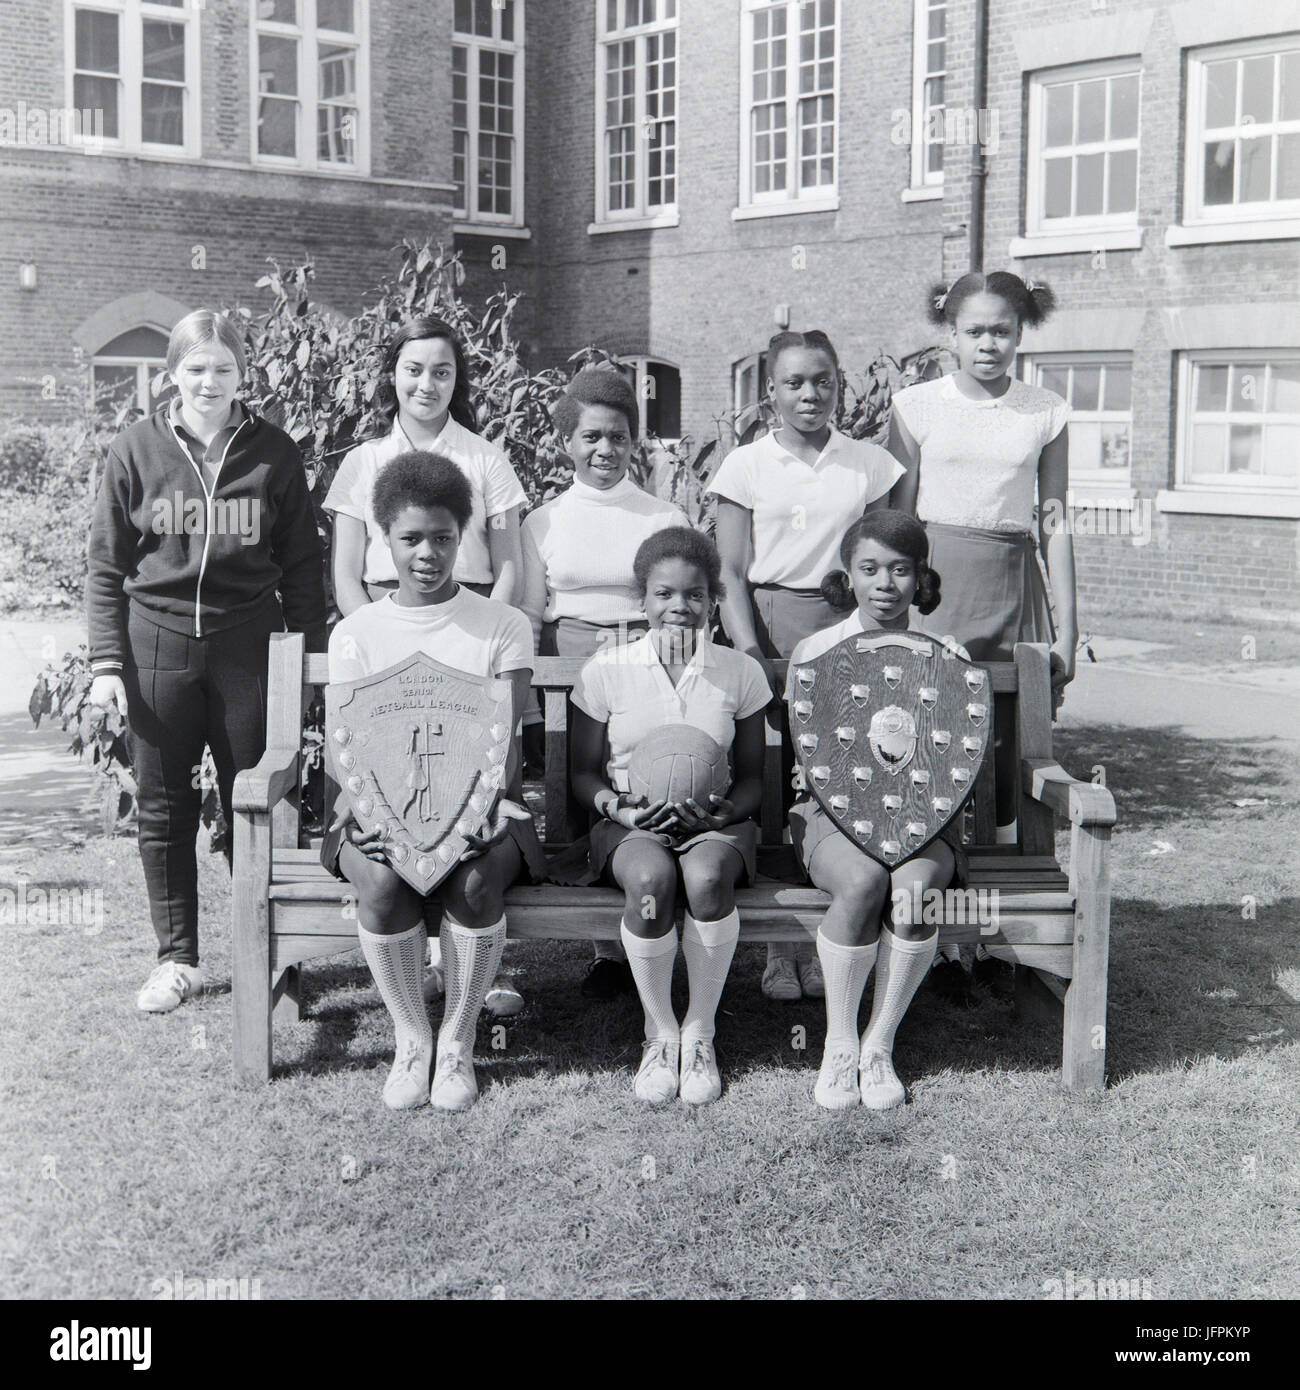 A netball team in the London Senior Netball League during the 1970s. Team comprises of mainly black, afro-caribbean - Stock Image